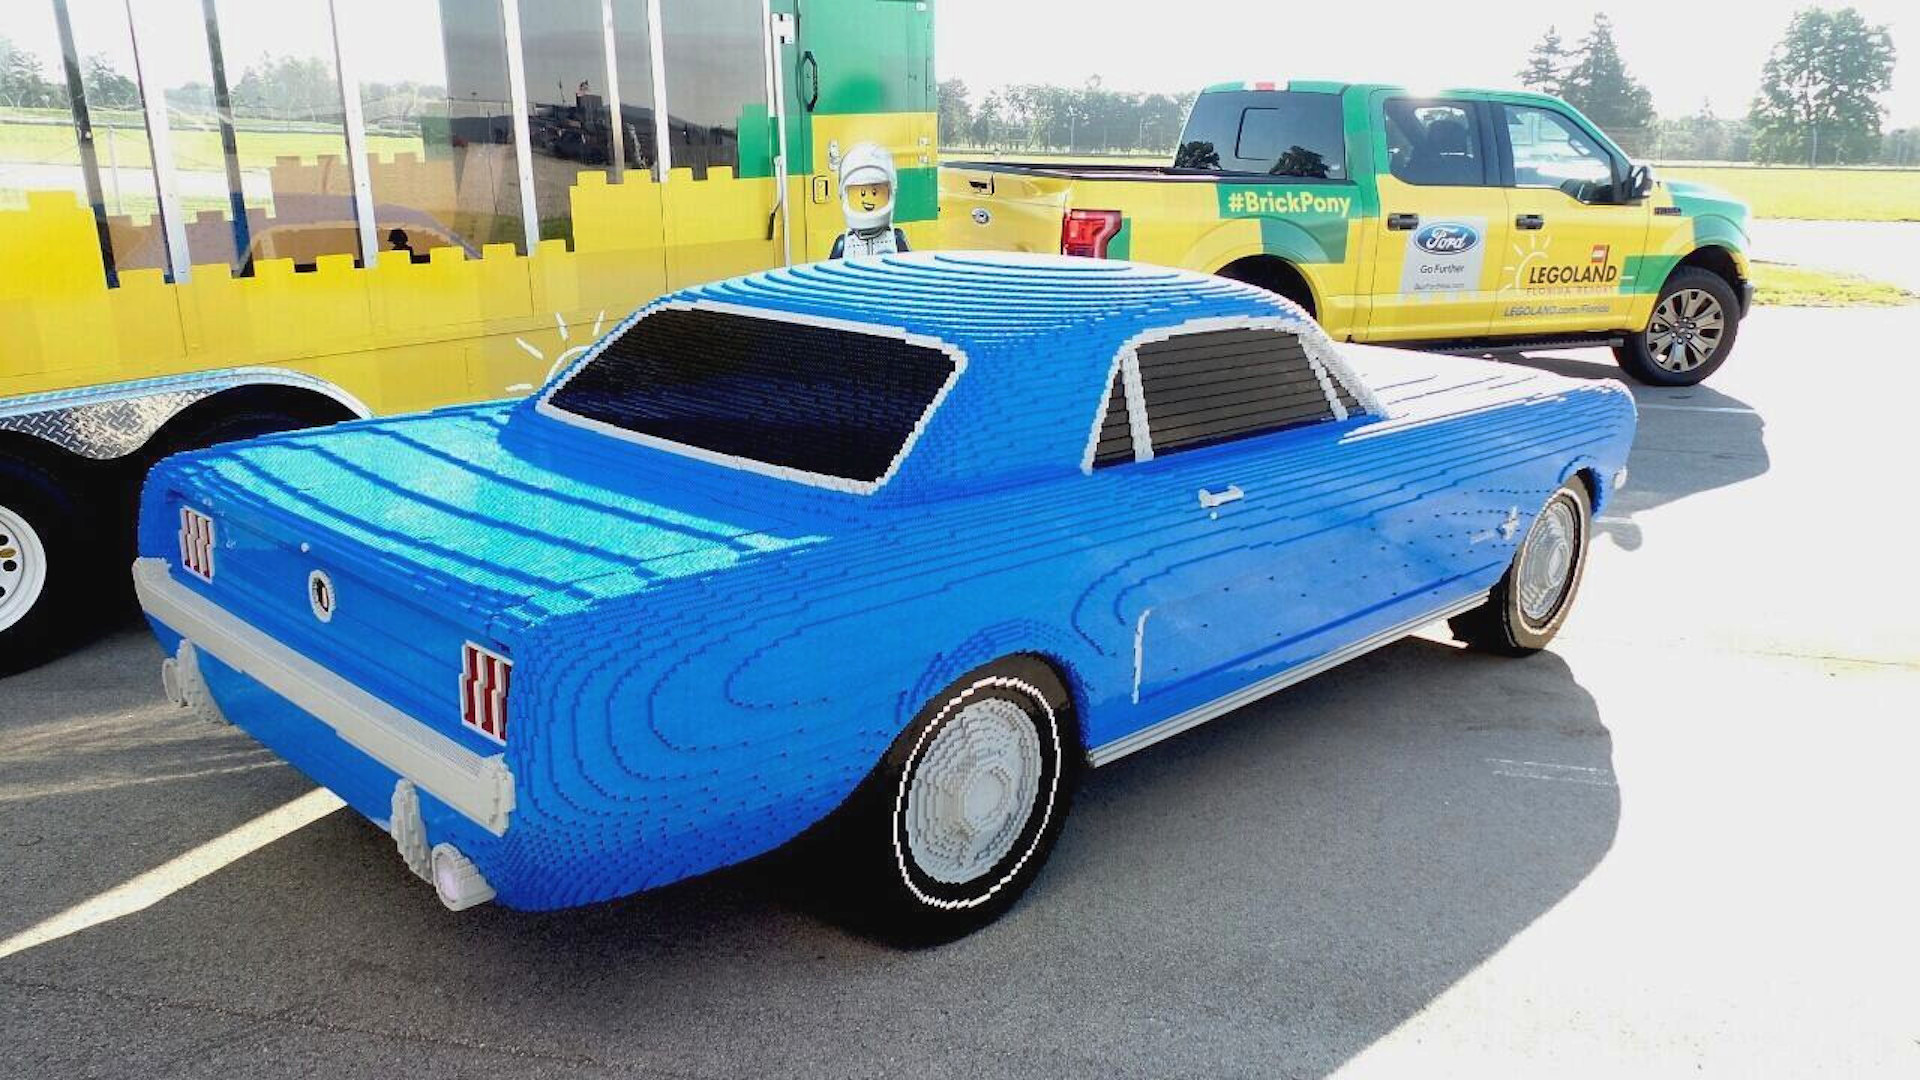 Life-size 1964 Ford Mustang recreated in Lego